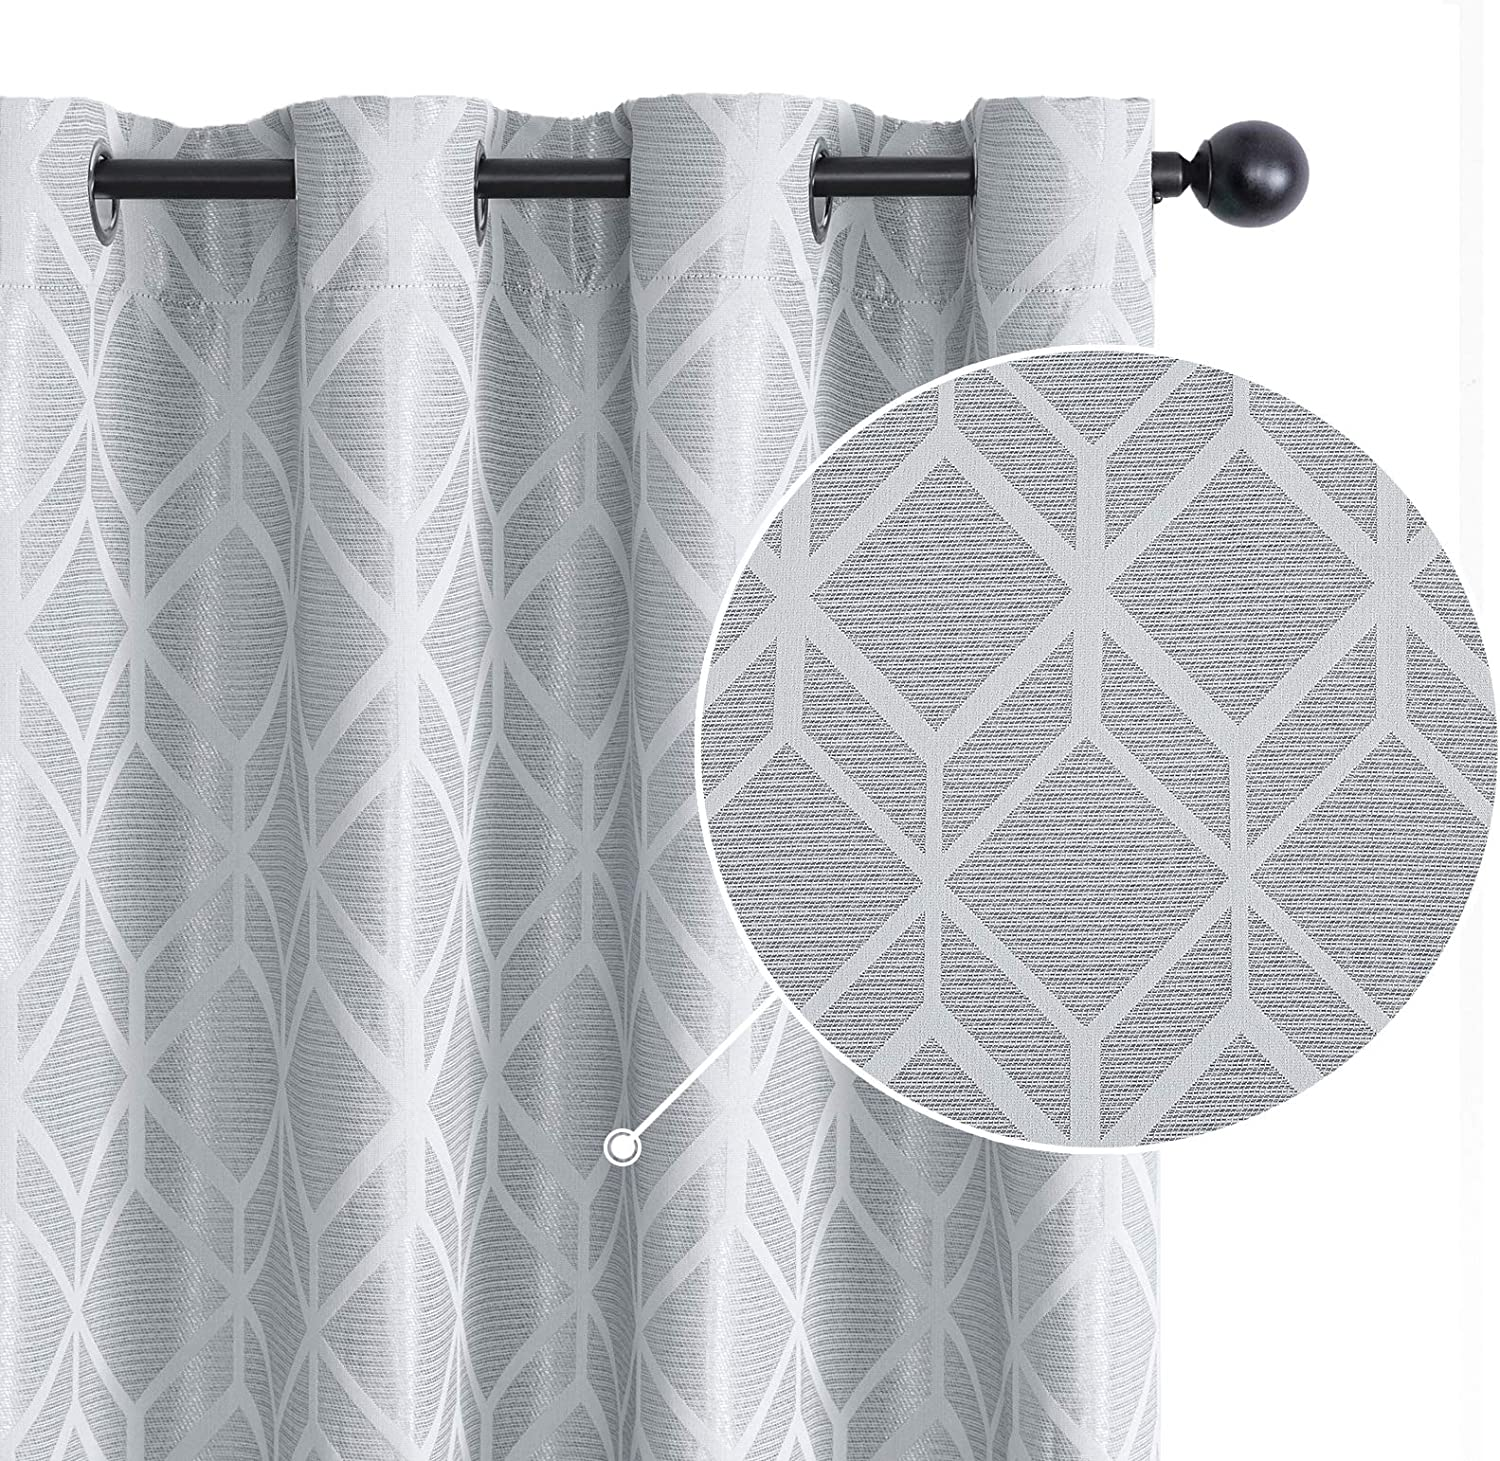 Topfinel Jacquard Cheap mail order shopping Room Darkening Curtains Bed Inches Long Tampa Mall for 84